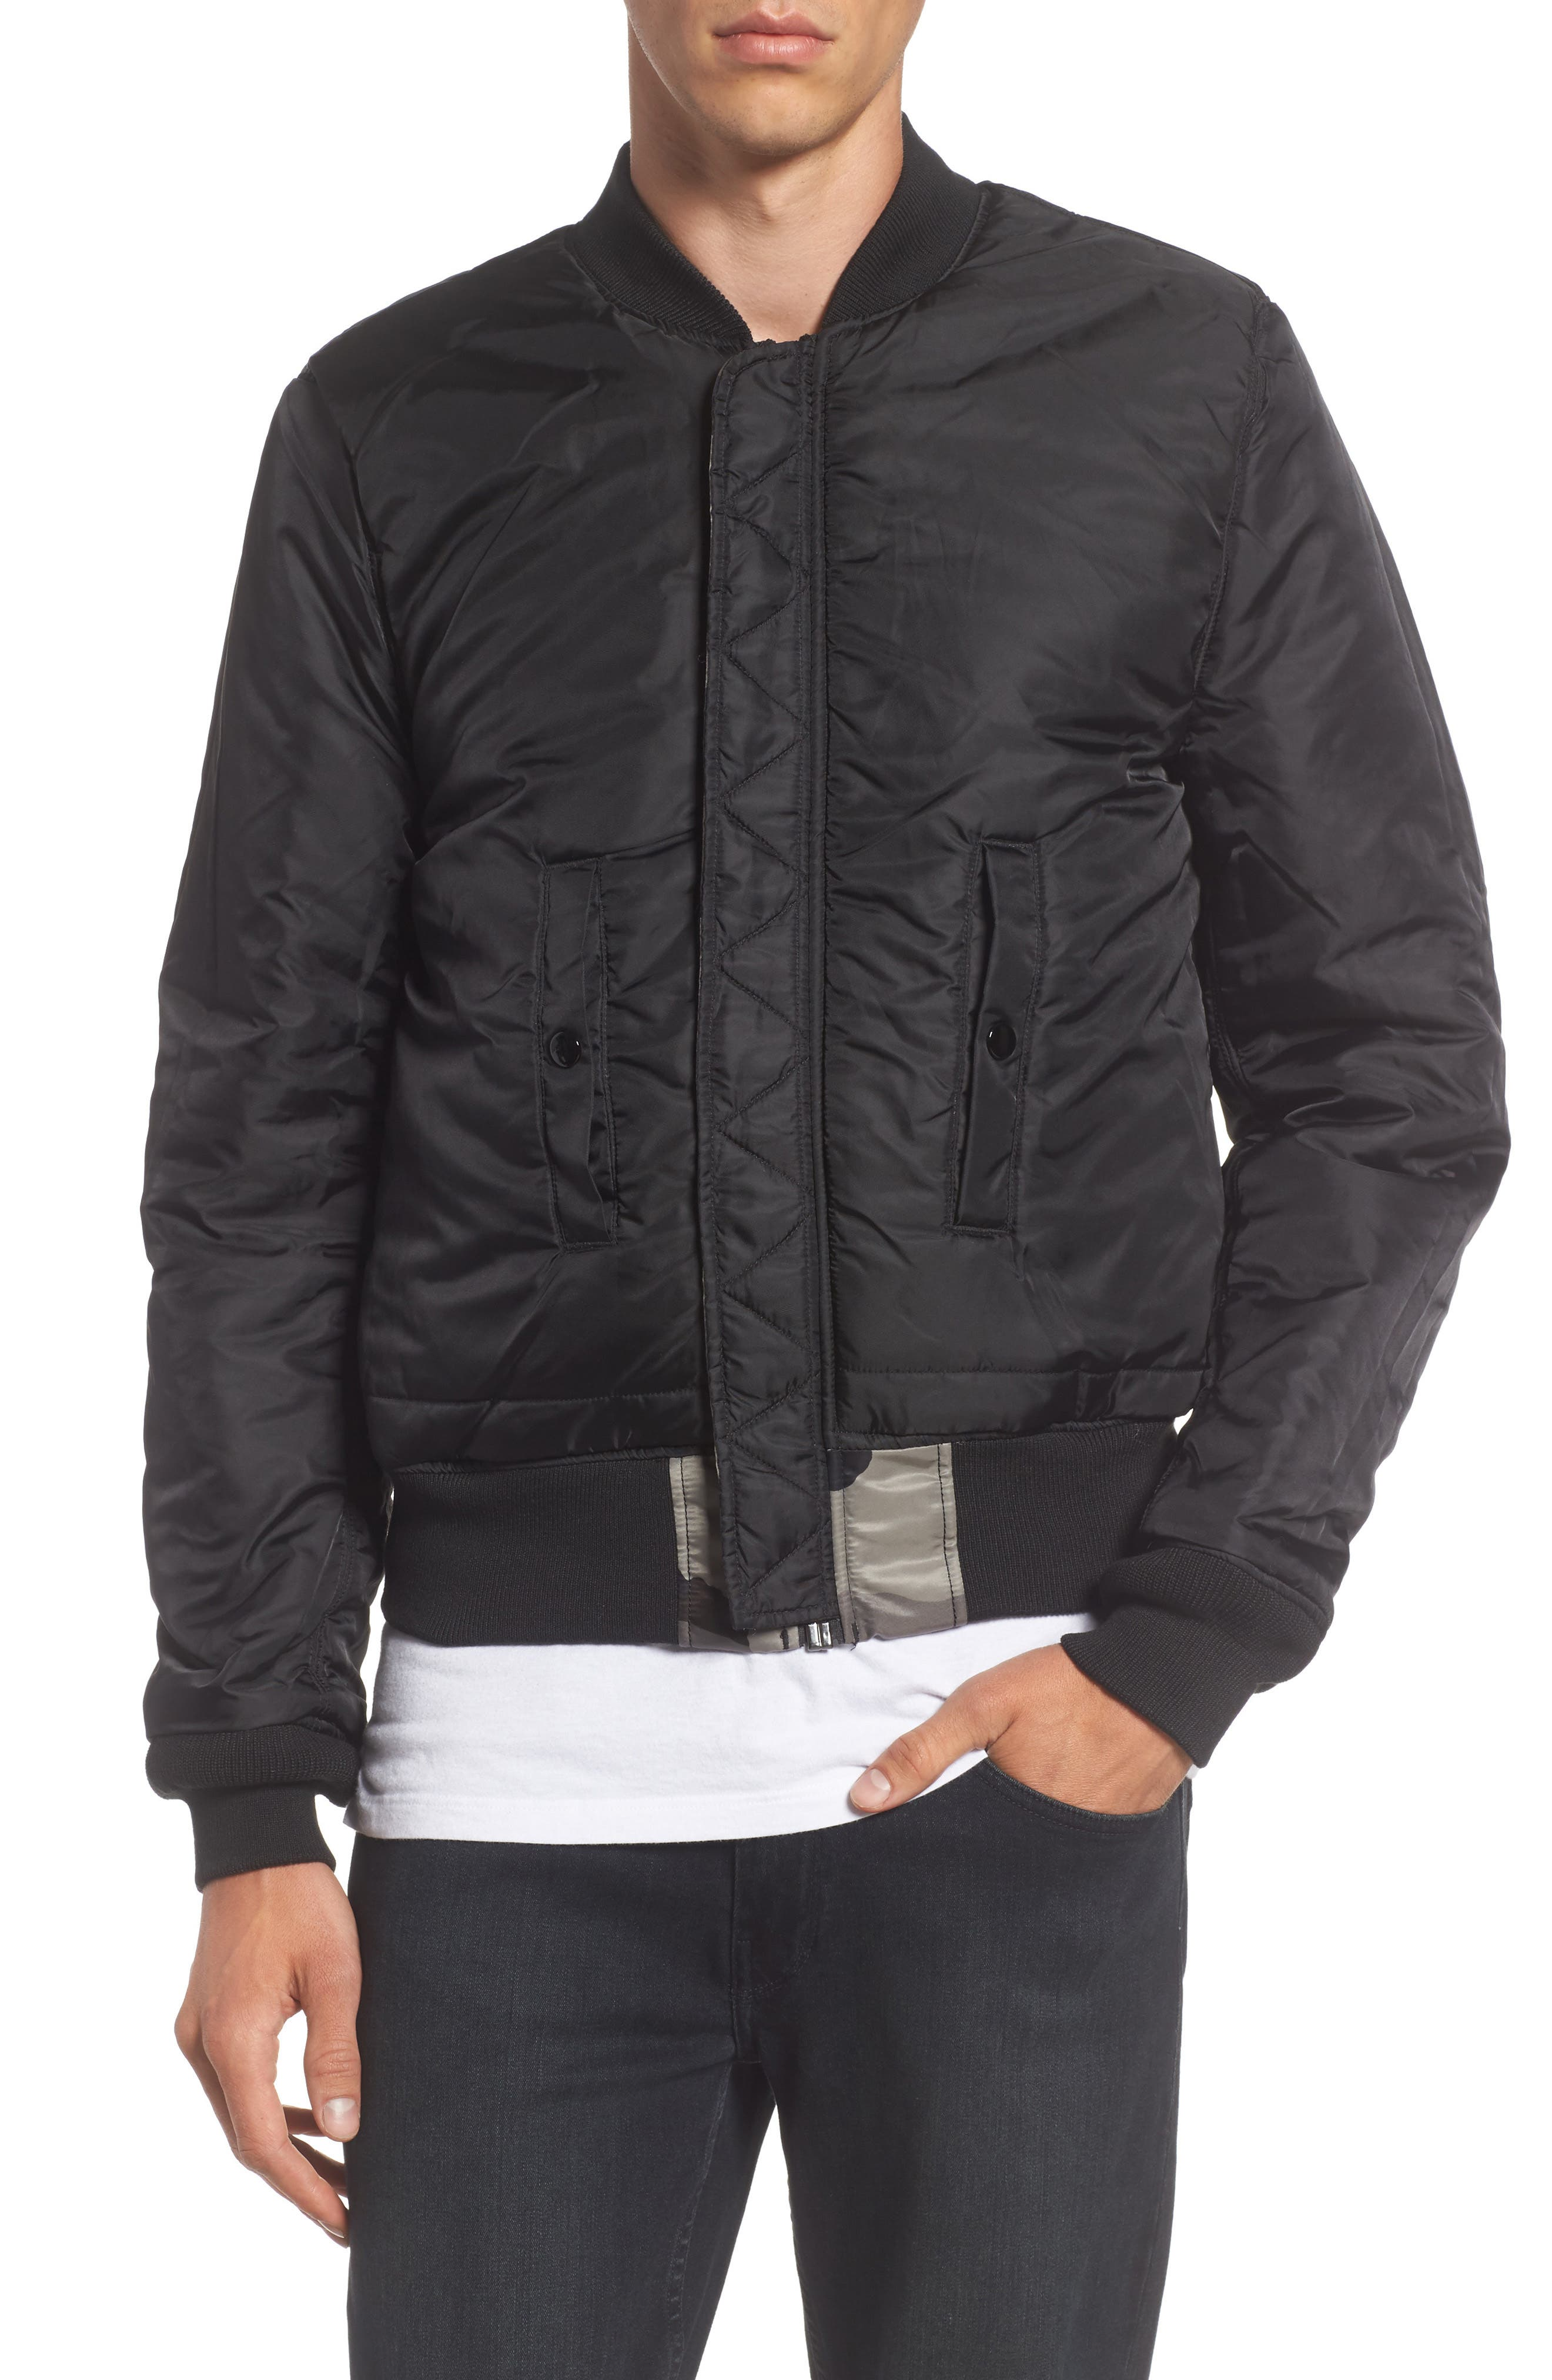 'MA-1' Slim Fit Bomber Jacket,                             Alternate thumbnail 4, color,                             005